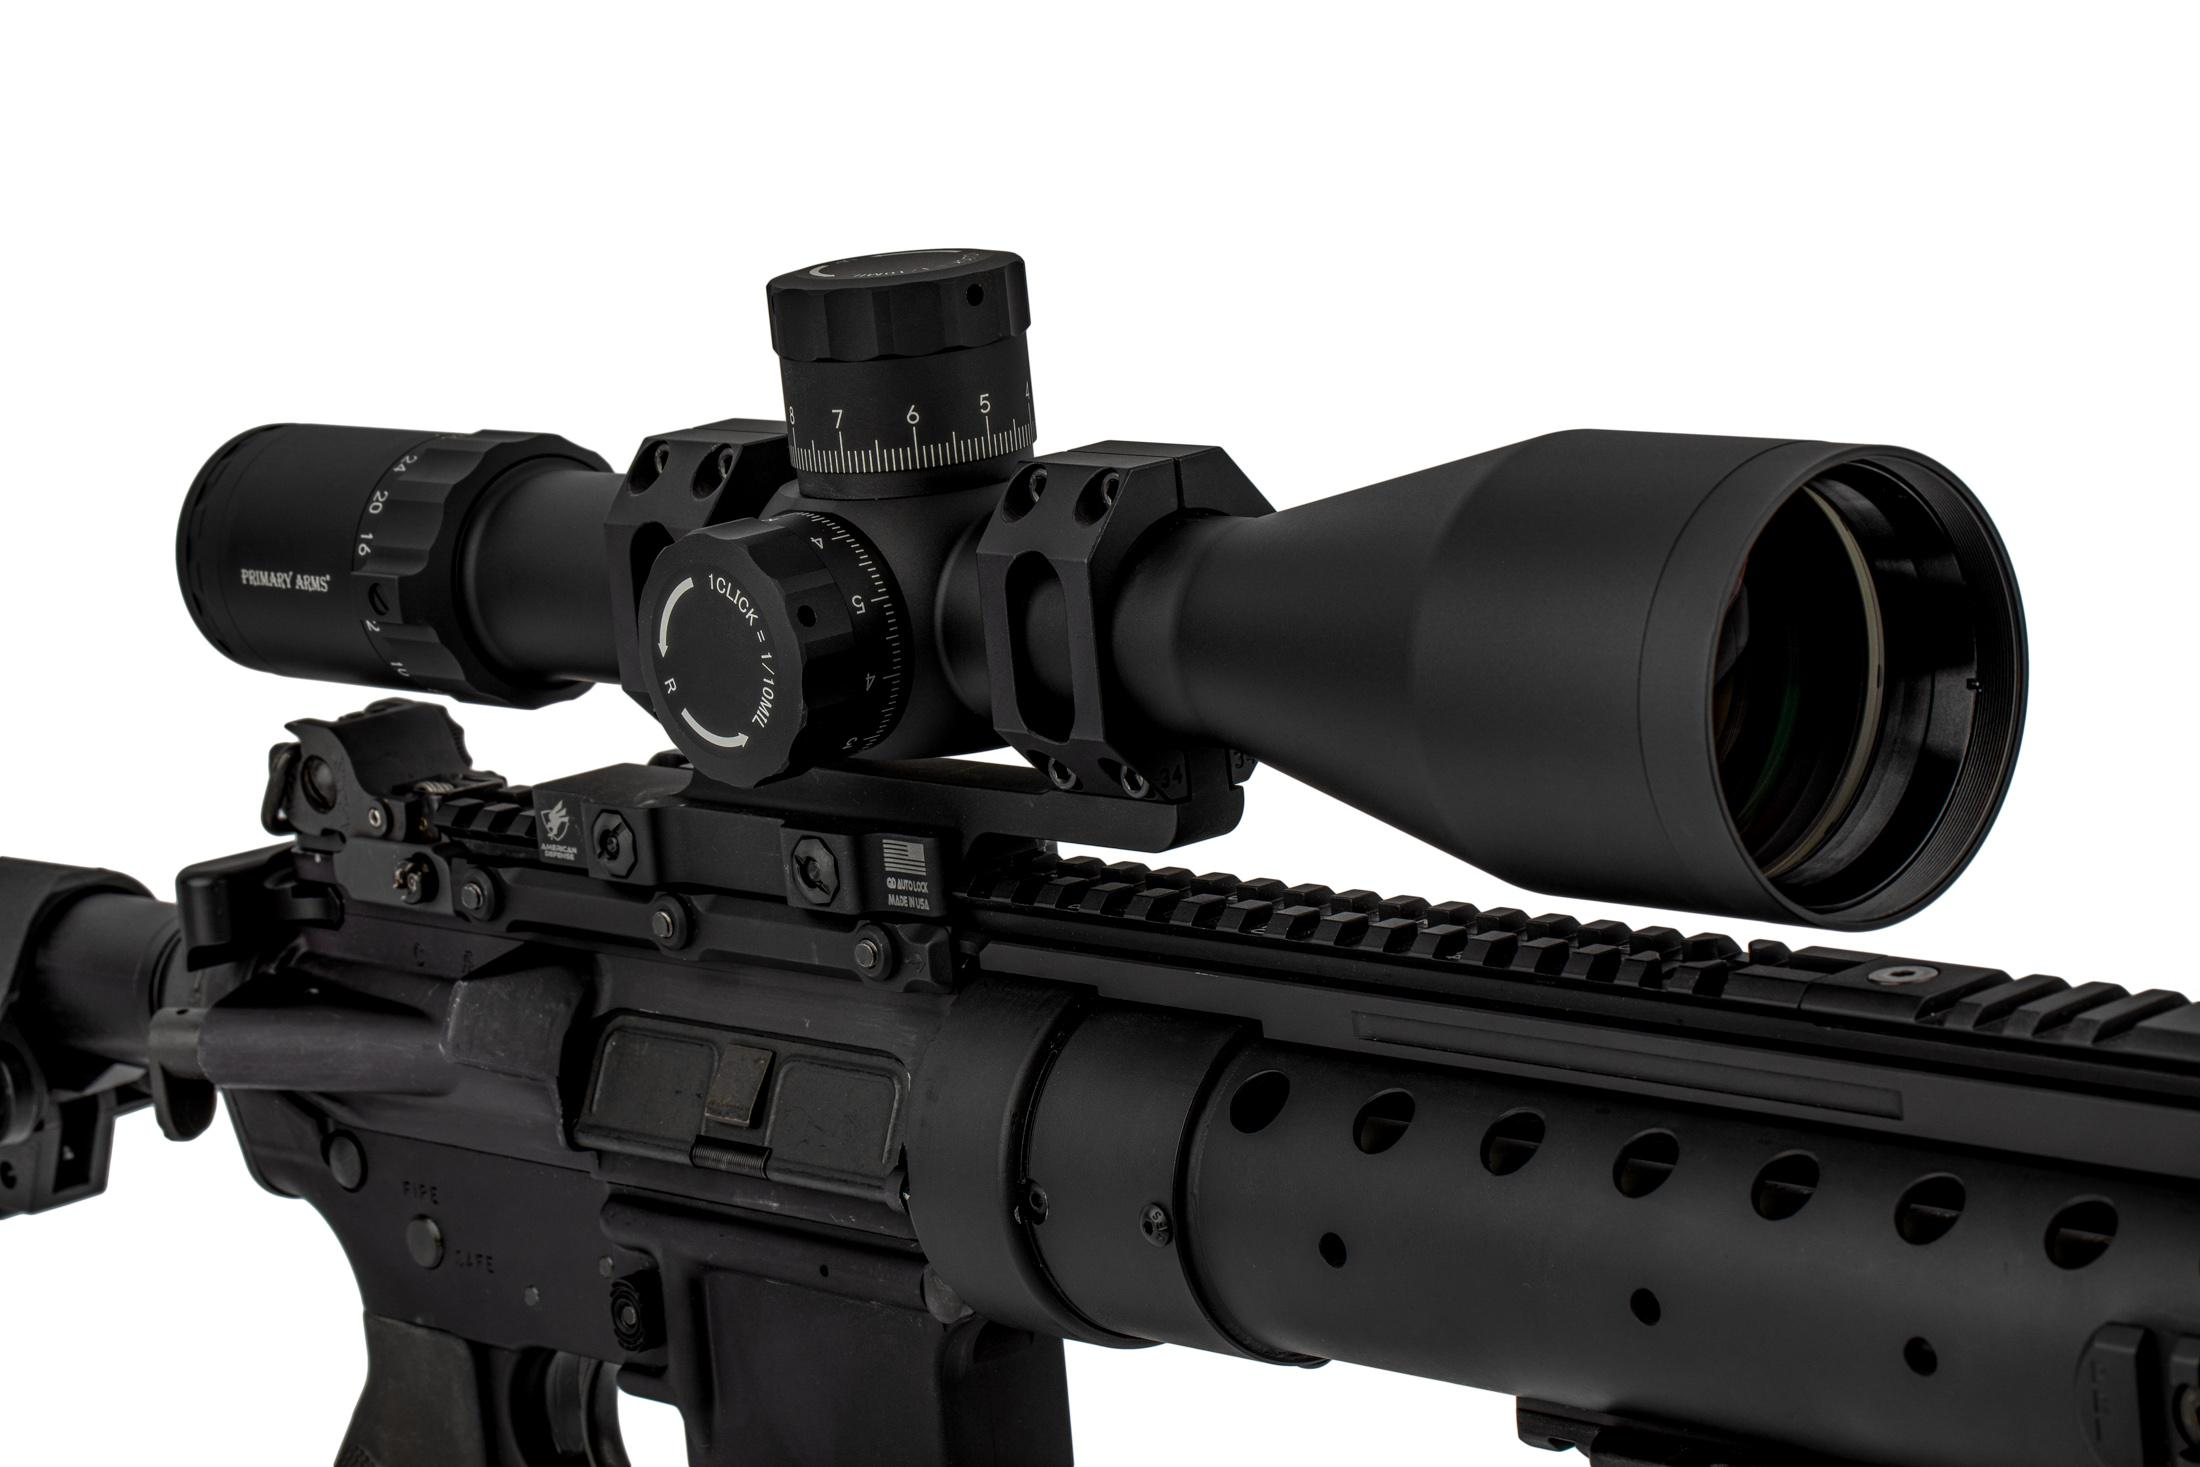 Primary Arms PLx5 6-30x56mm FFP Rifle Scope - Illuminated MIL-Dot